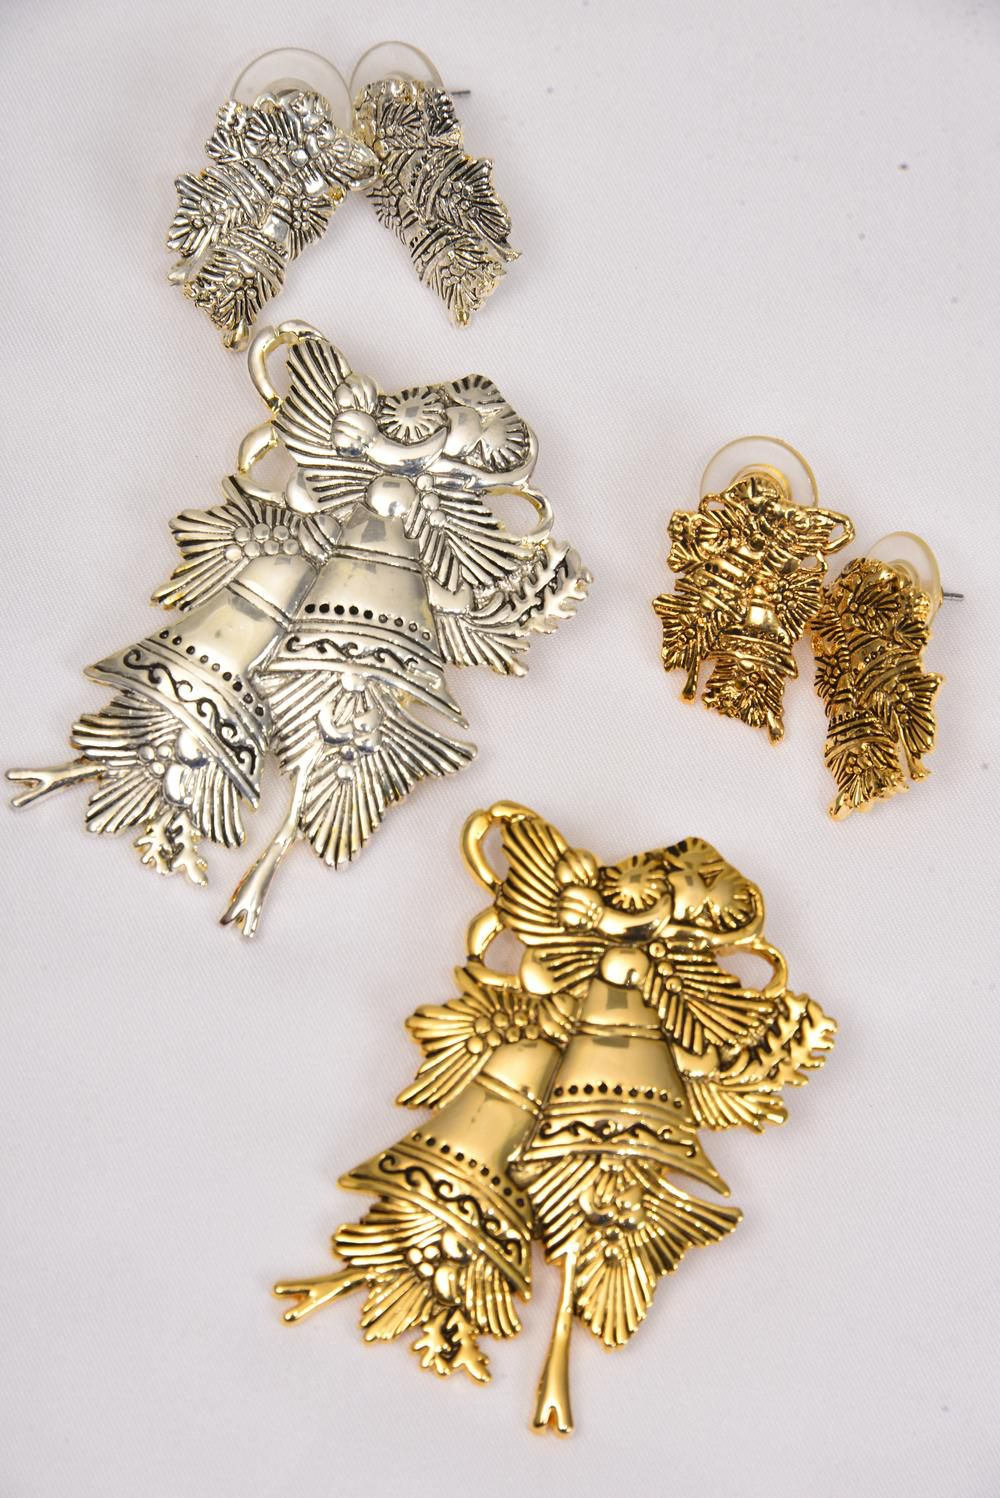 "Xmas Pin or Pendant Sets Bells/Sets Size-Pendant 2""x 1.5"", Earring 1""x 0.65"" Wide,Display Card & OPP Bag & UPC code,Choose Gold or Silver Finish,Also Use For Pendant"